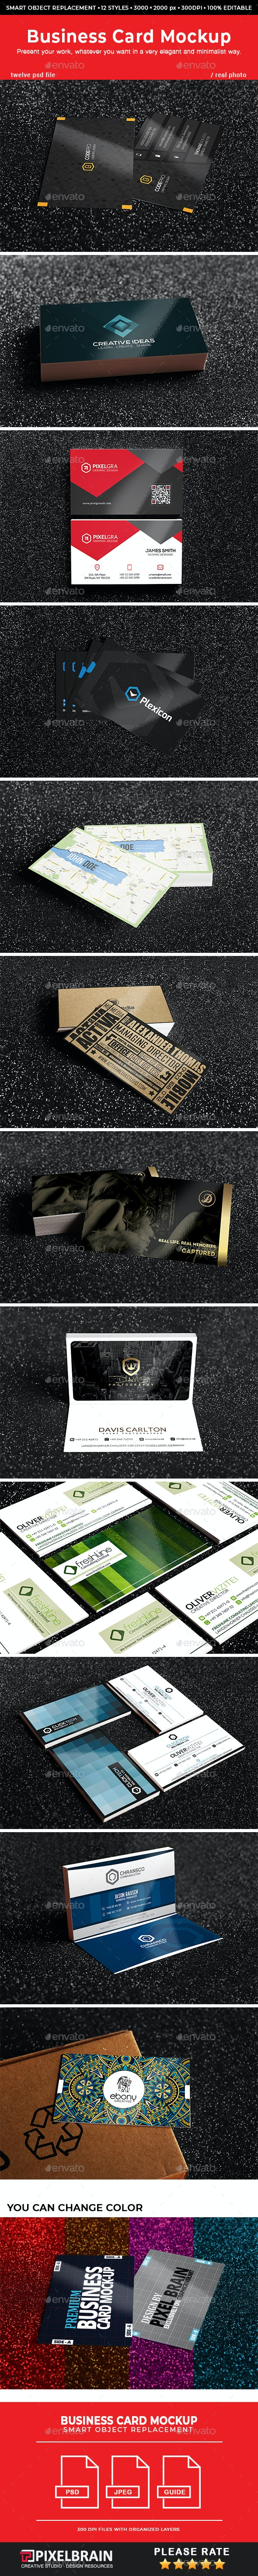 Realistic Business Card Mockups Vol. 4 - Business Cards Print